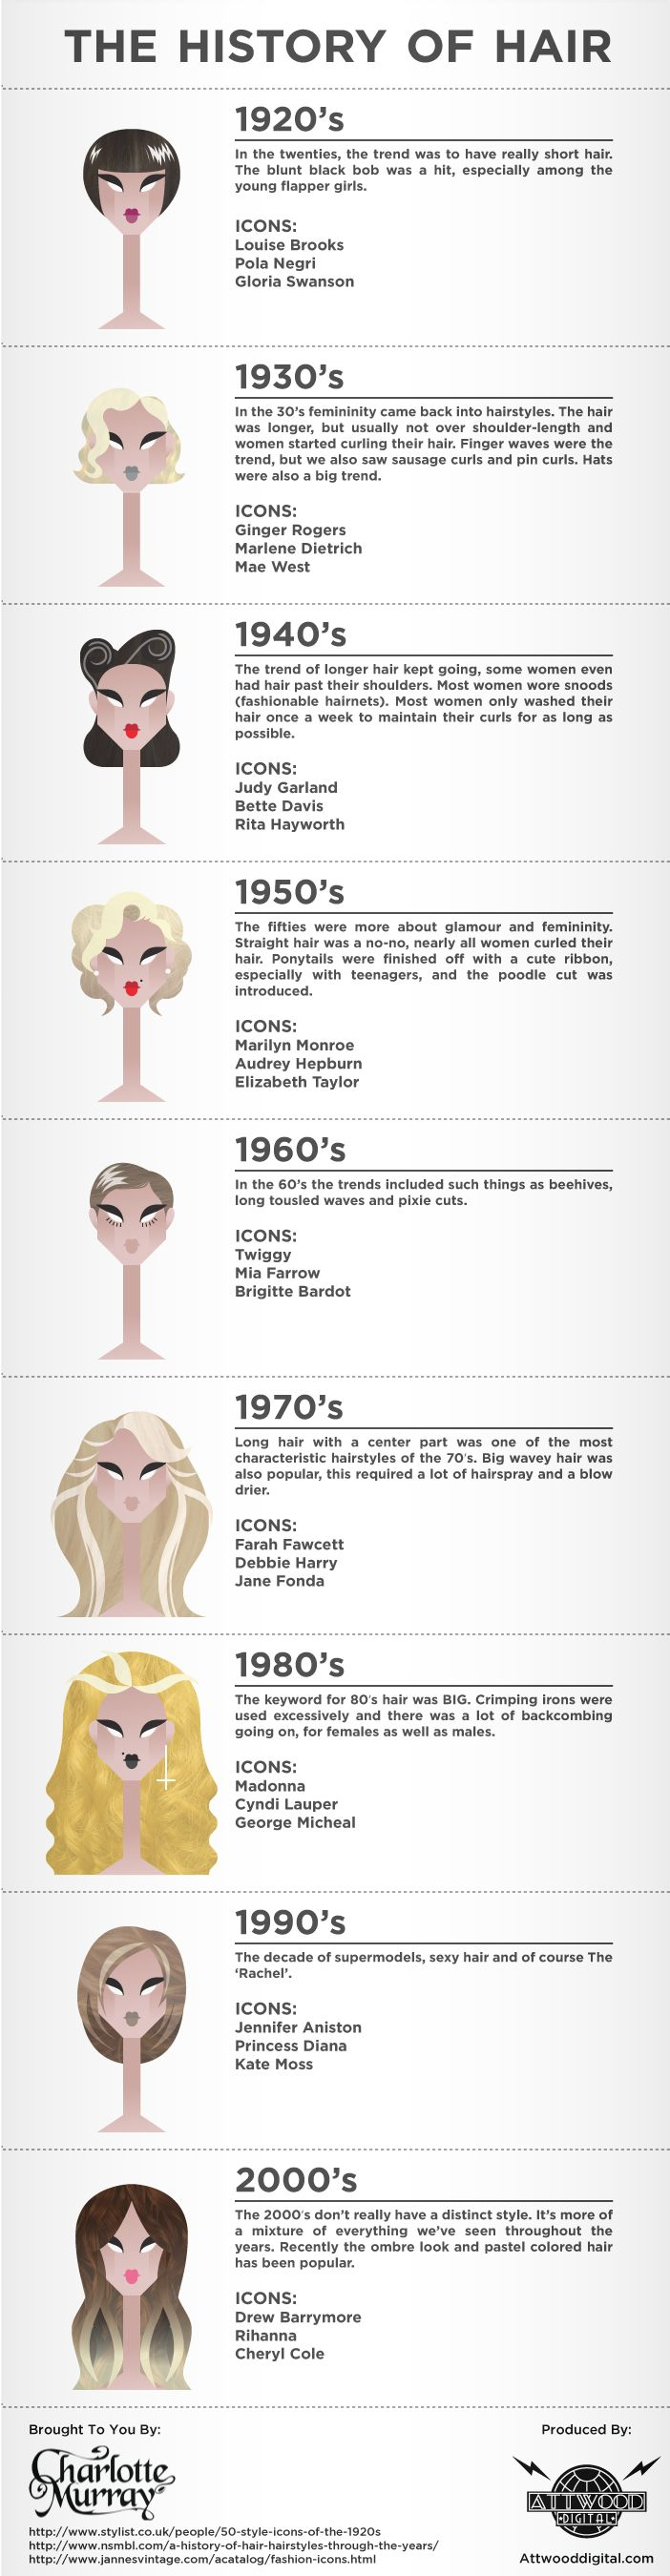 history of hair styling 169 best images about hair styles on easy 9509 | 54efa911a1d56fe7b07703adec31f968 s hairstyles woman hairstyles